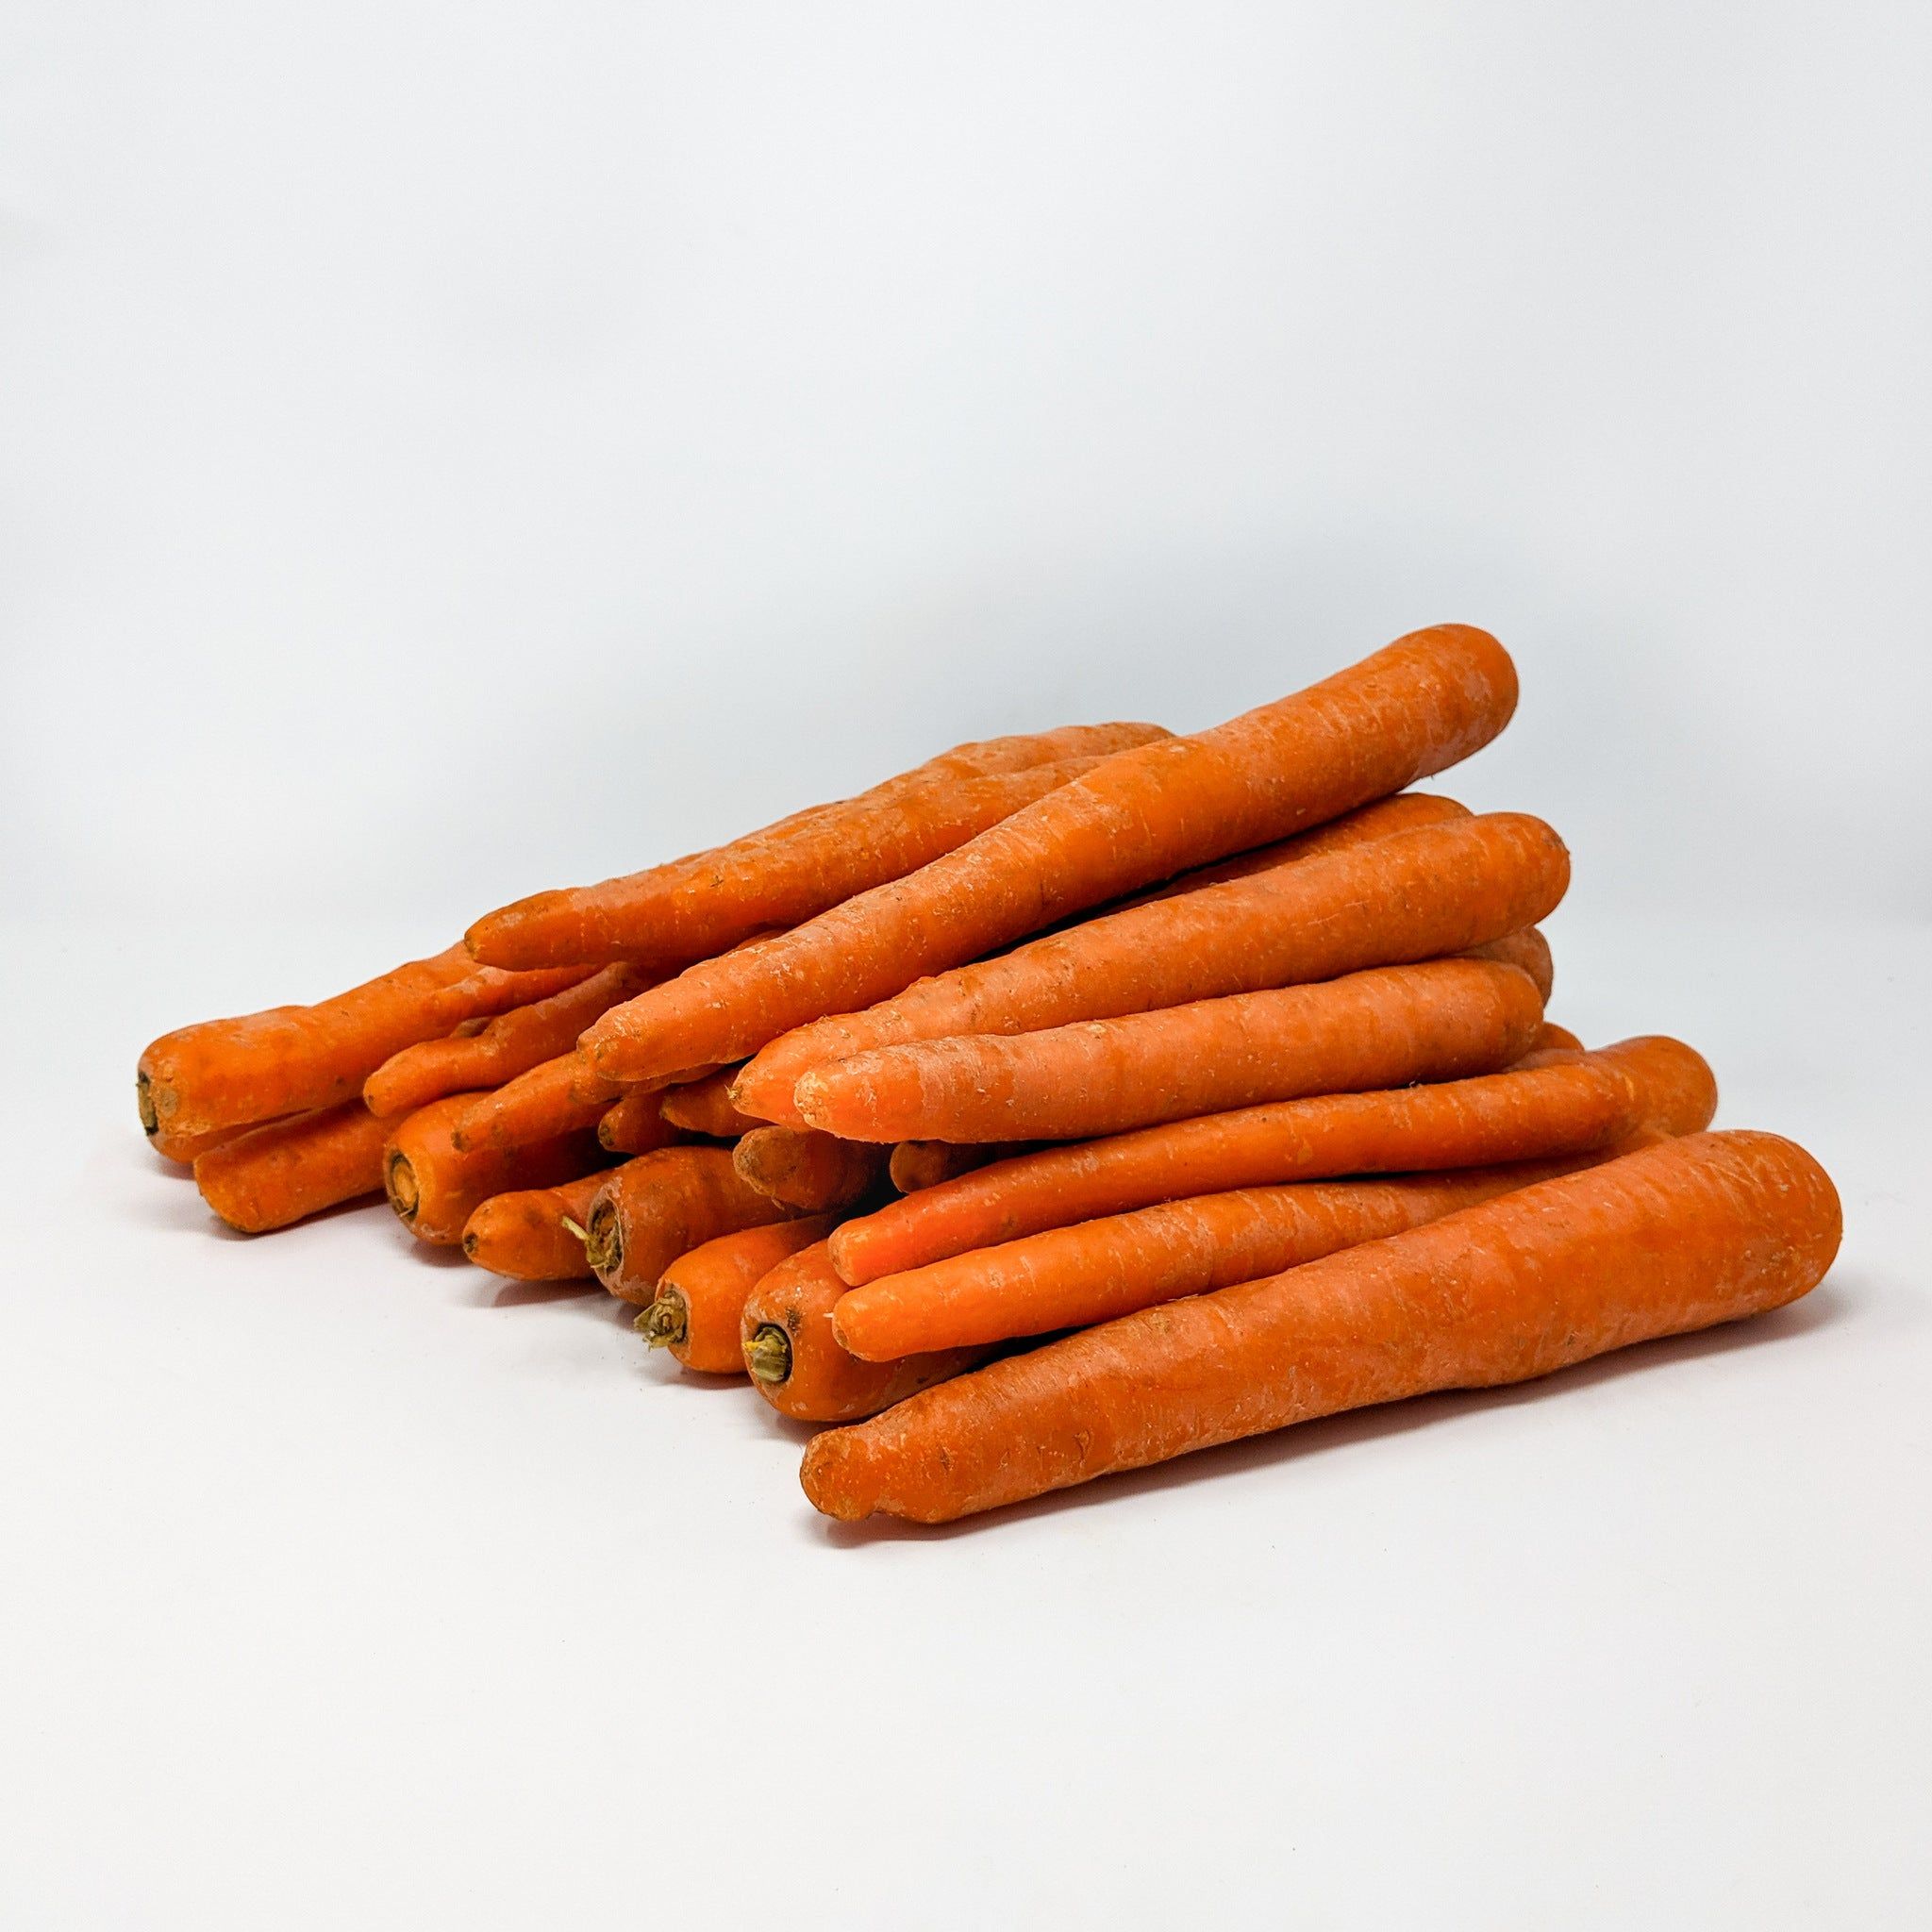 Large Carrots (various weights)- Locally Grown